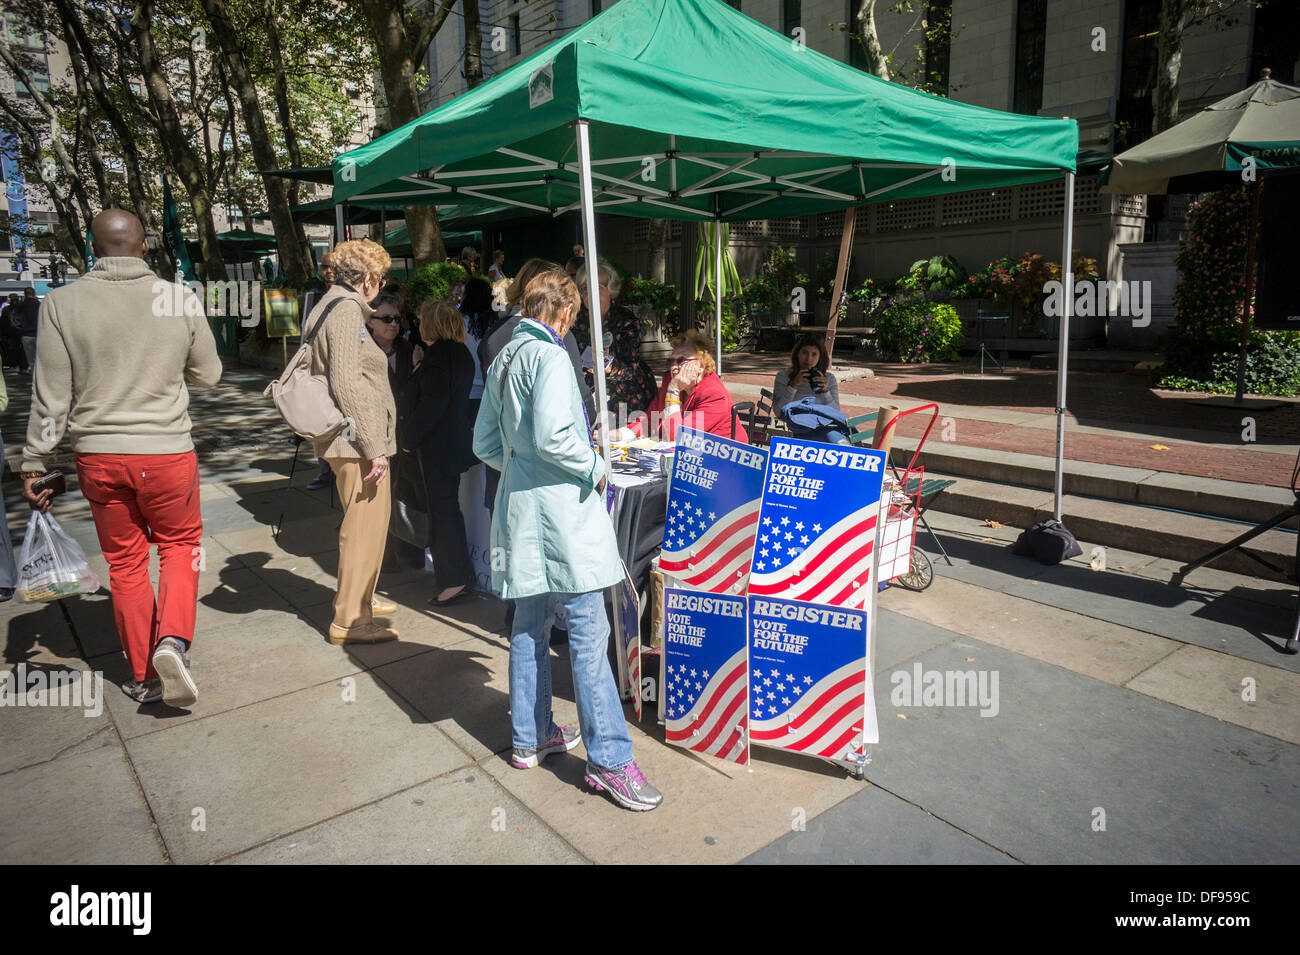 Members of the League of Women Voters celebrate National Voter Registration Day in Bryant Park in New York - Stock Image